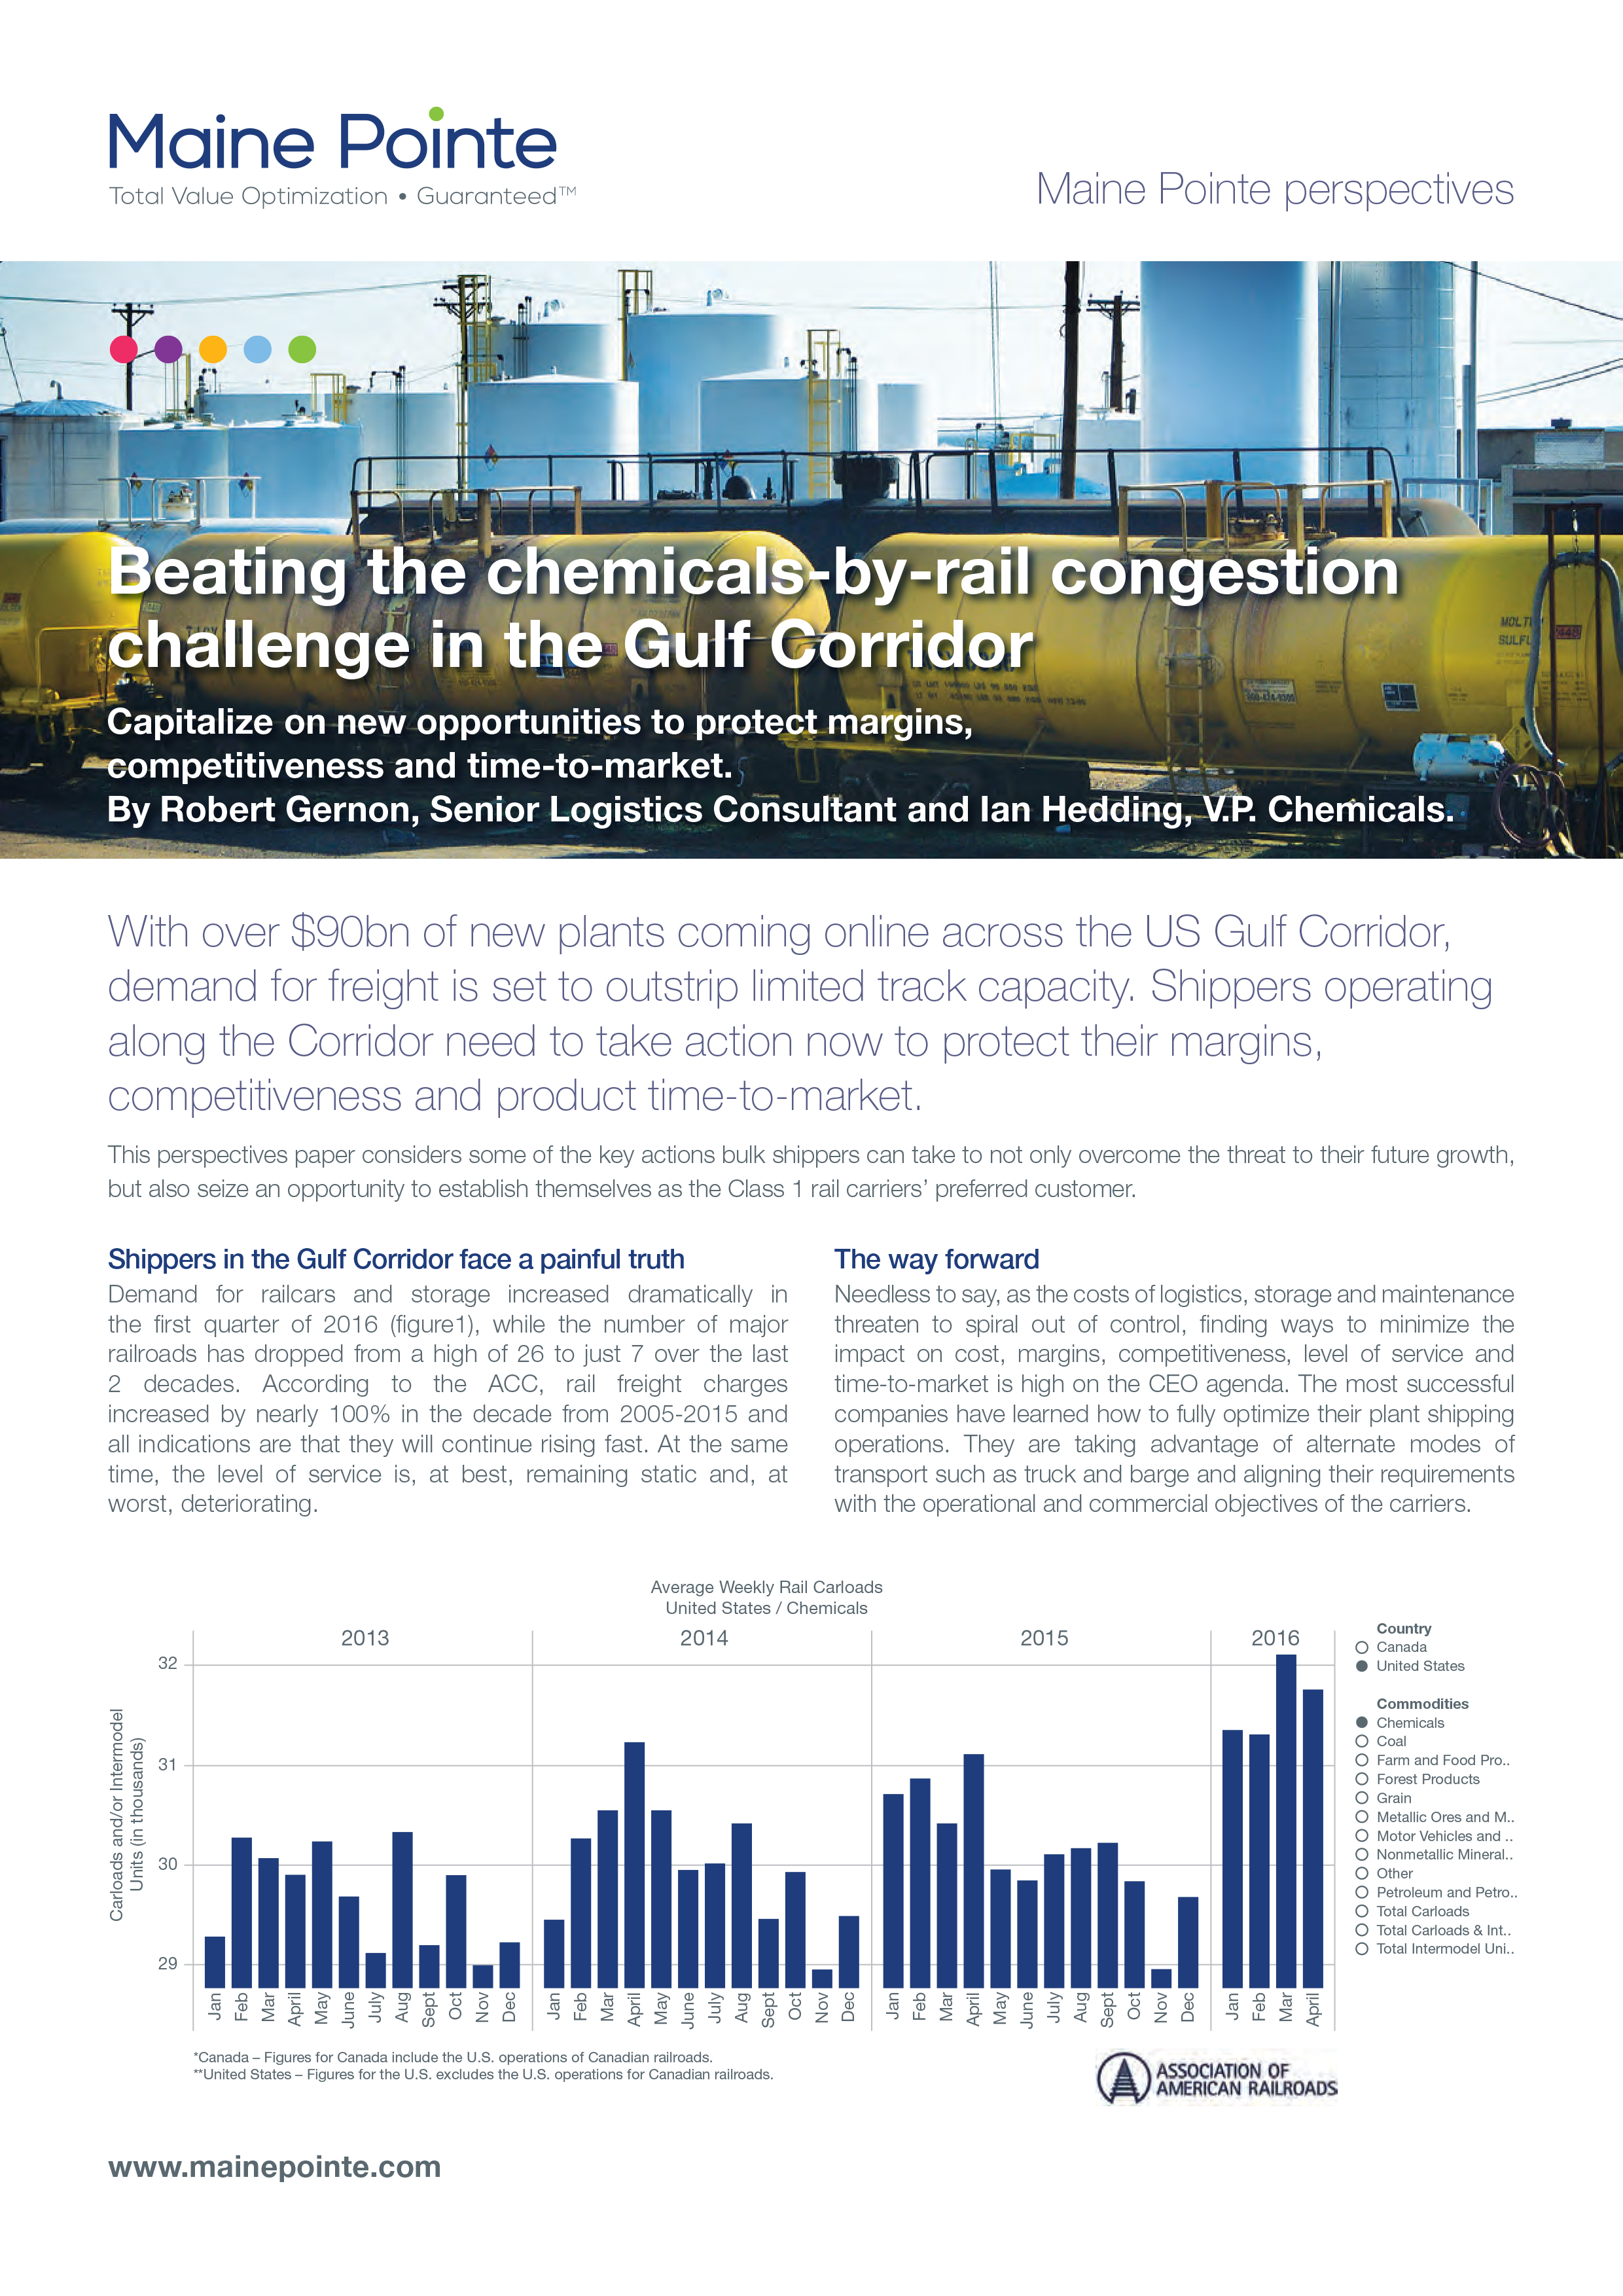 Gulf Corridor Chemicals-by-Rail